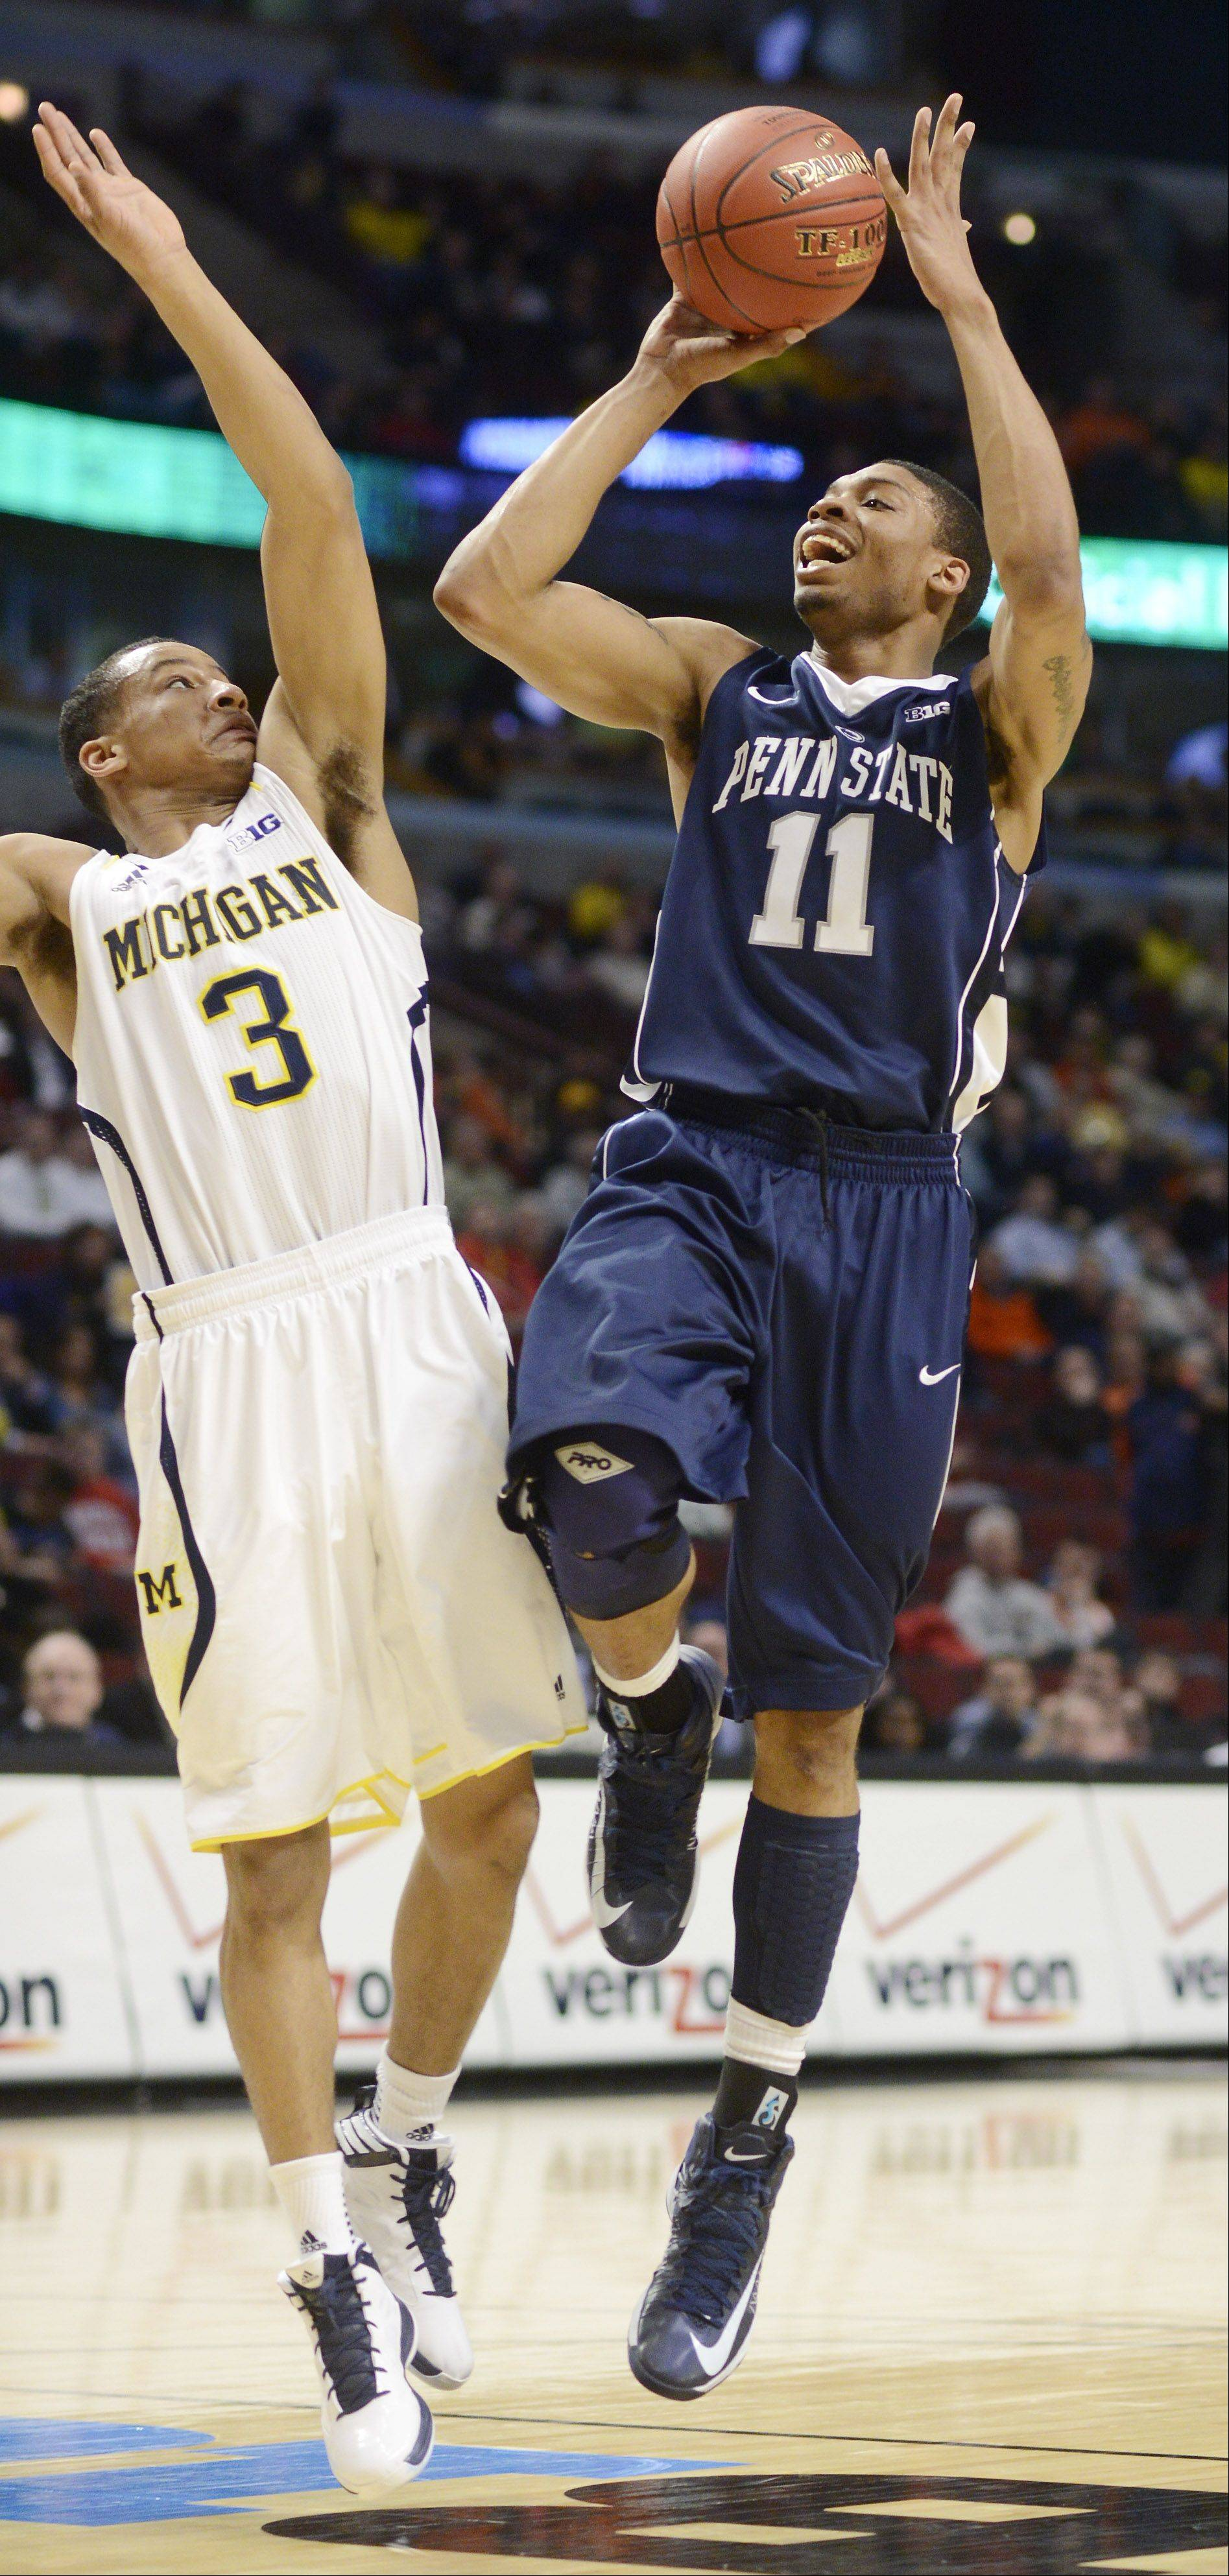 Penn State's Jermaine Marshall takes a shot against the defense of Michigan's Trey Burke.